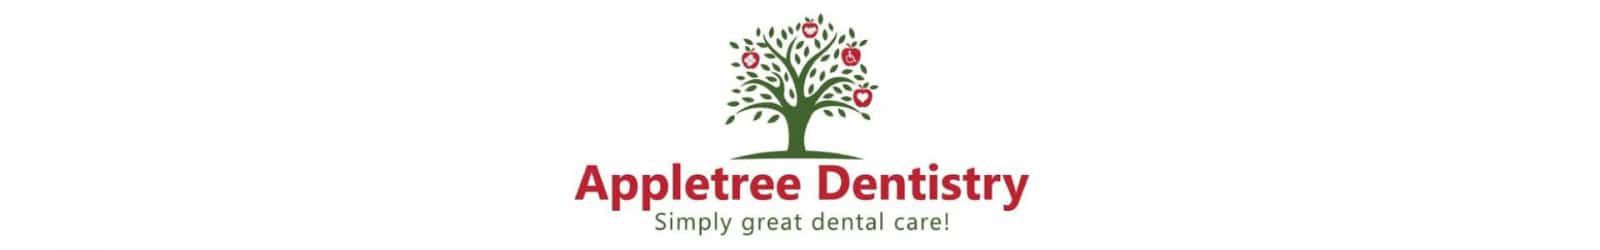 apple tree dentistry logo example